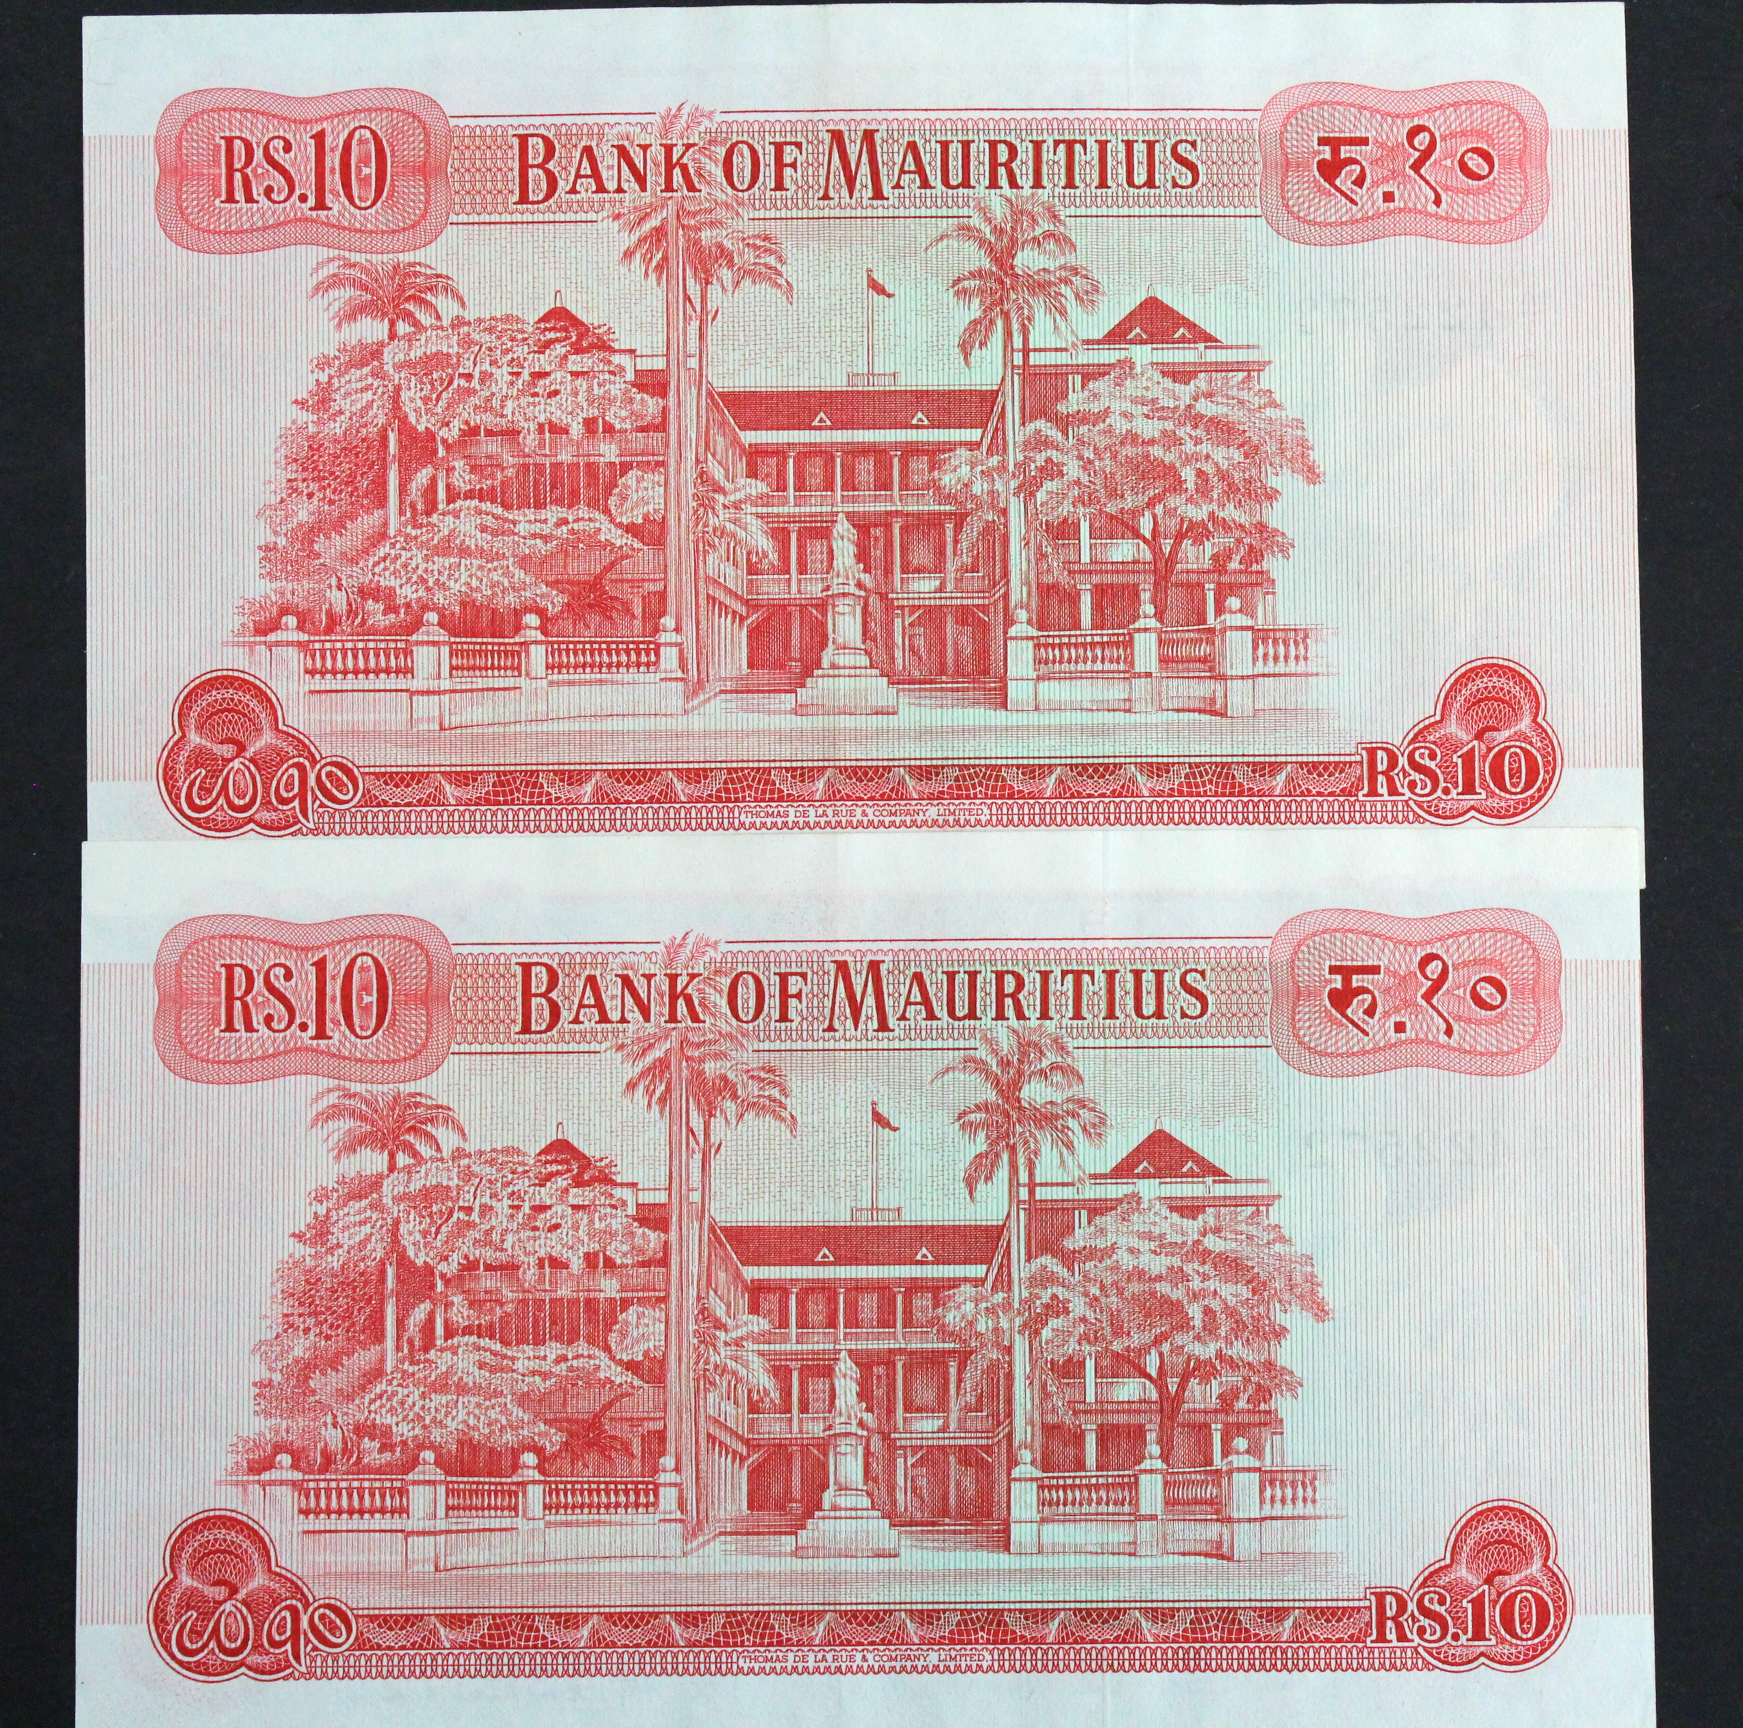 Mauritius 10 Rupees (2) issued 1967, portrait Queen Elizabeth II at right, a consecutively - Image 2 of 2